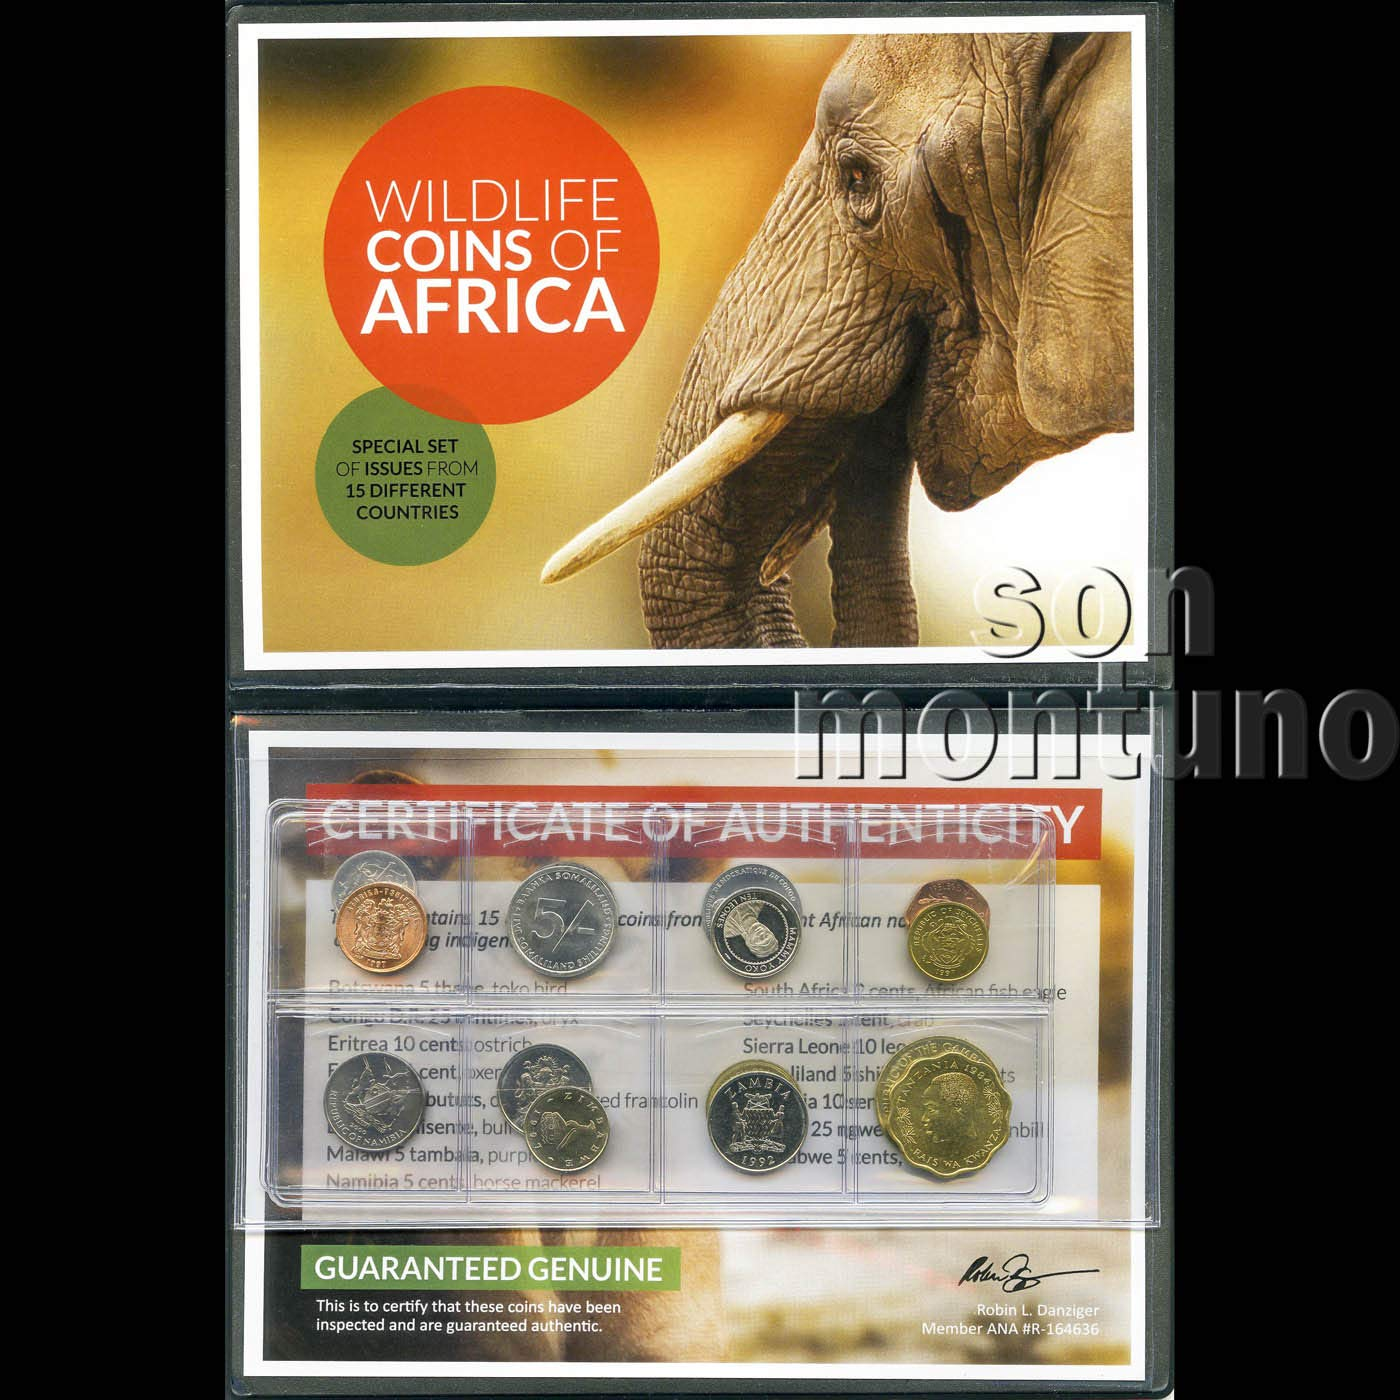 WILDLIFE COINS OF AFRICA Collection of 15 Uncirculated Legal Tender Coins from 15 Different African Nations Comes in Beautiful Folder with Certificate of Authenticity /& Identifier List GREAT SET FOR All Featuring Images of Their Indigenous Wildlife